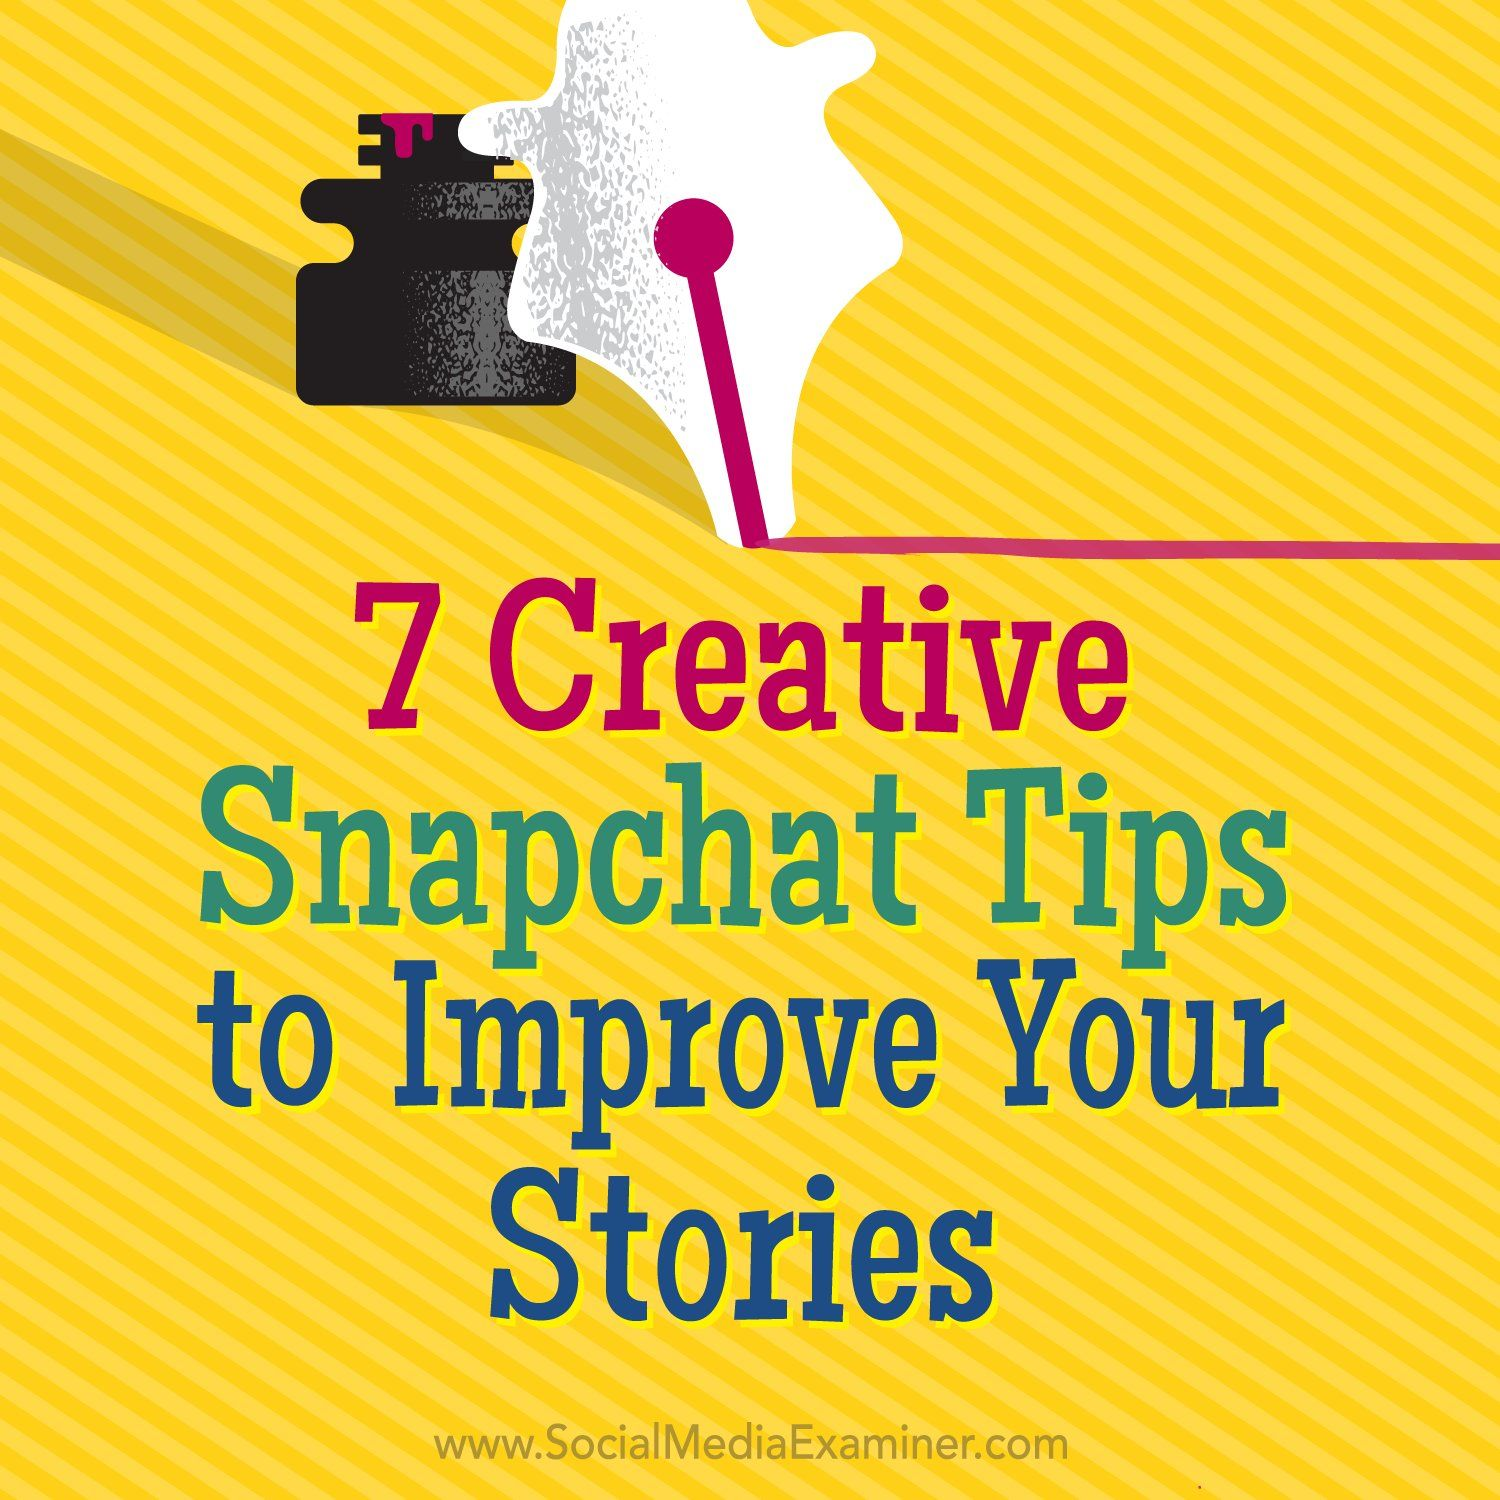 RT Mike_Stelzner: 7 Creative #Snapchat Tips to Improve Your Stories https://t.co/NffiK8DUXa by andrewandpete smex https://t.co/Ou7dbQ8fjT